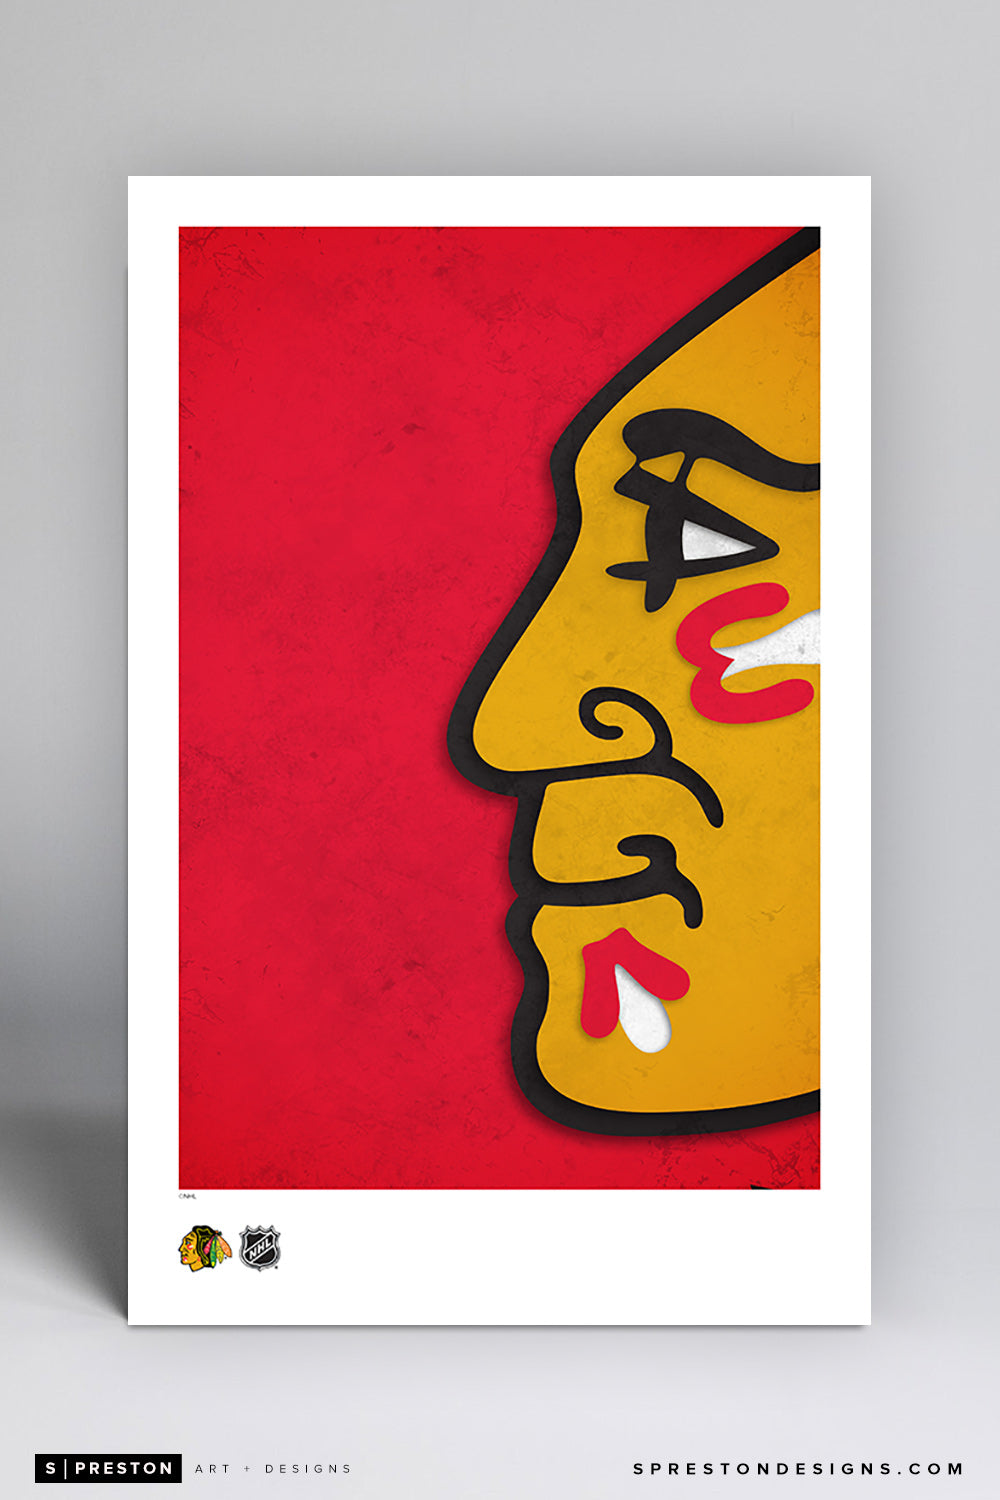 Minimalist Logo - Chicago Blackhawks Poster Print Chicago Blackhawks - S Preston